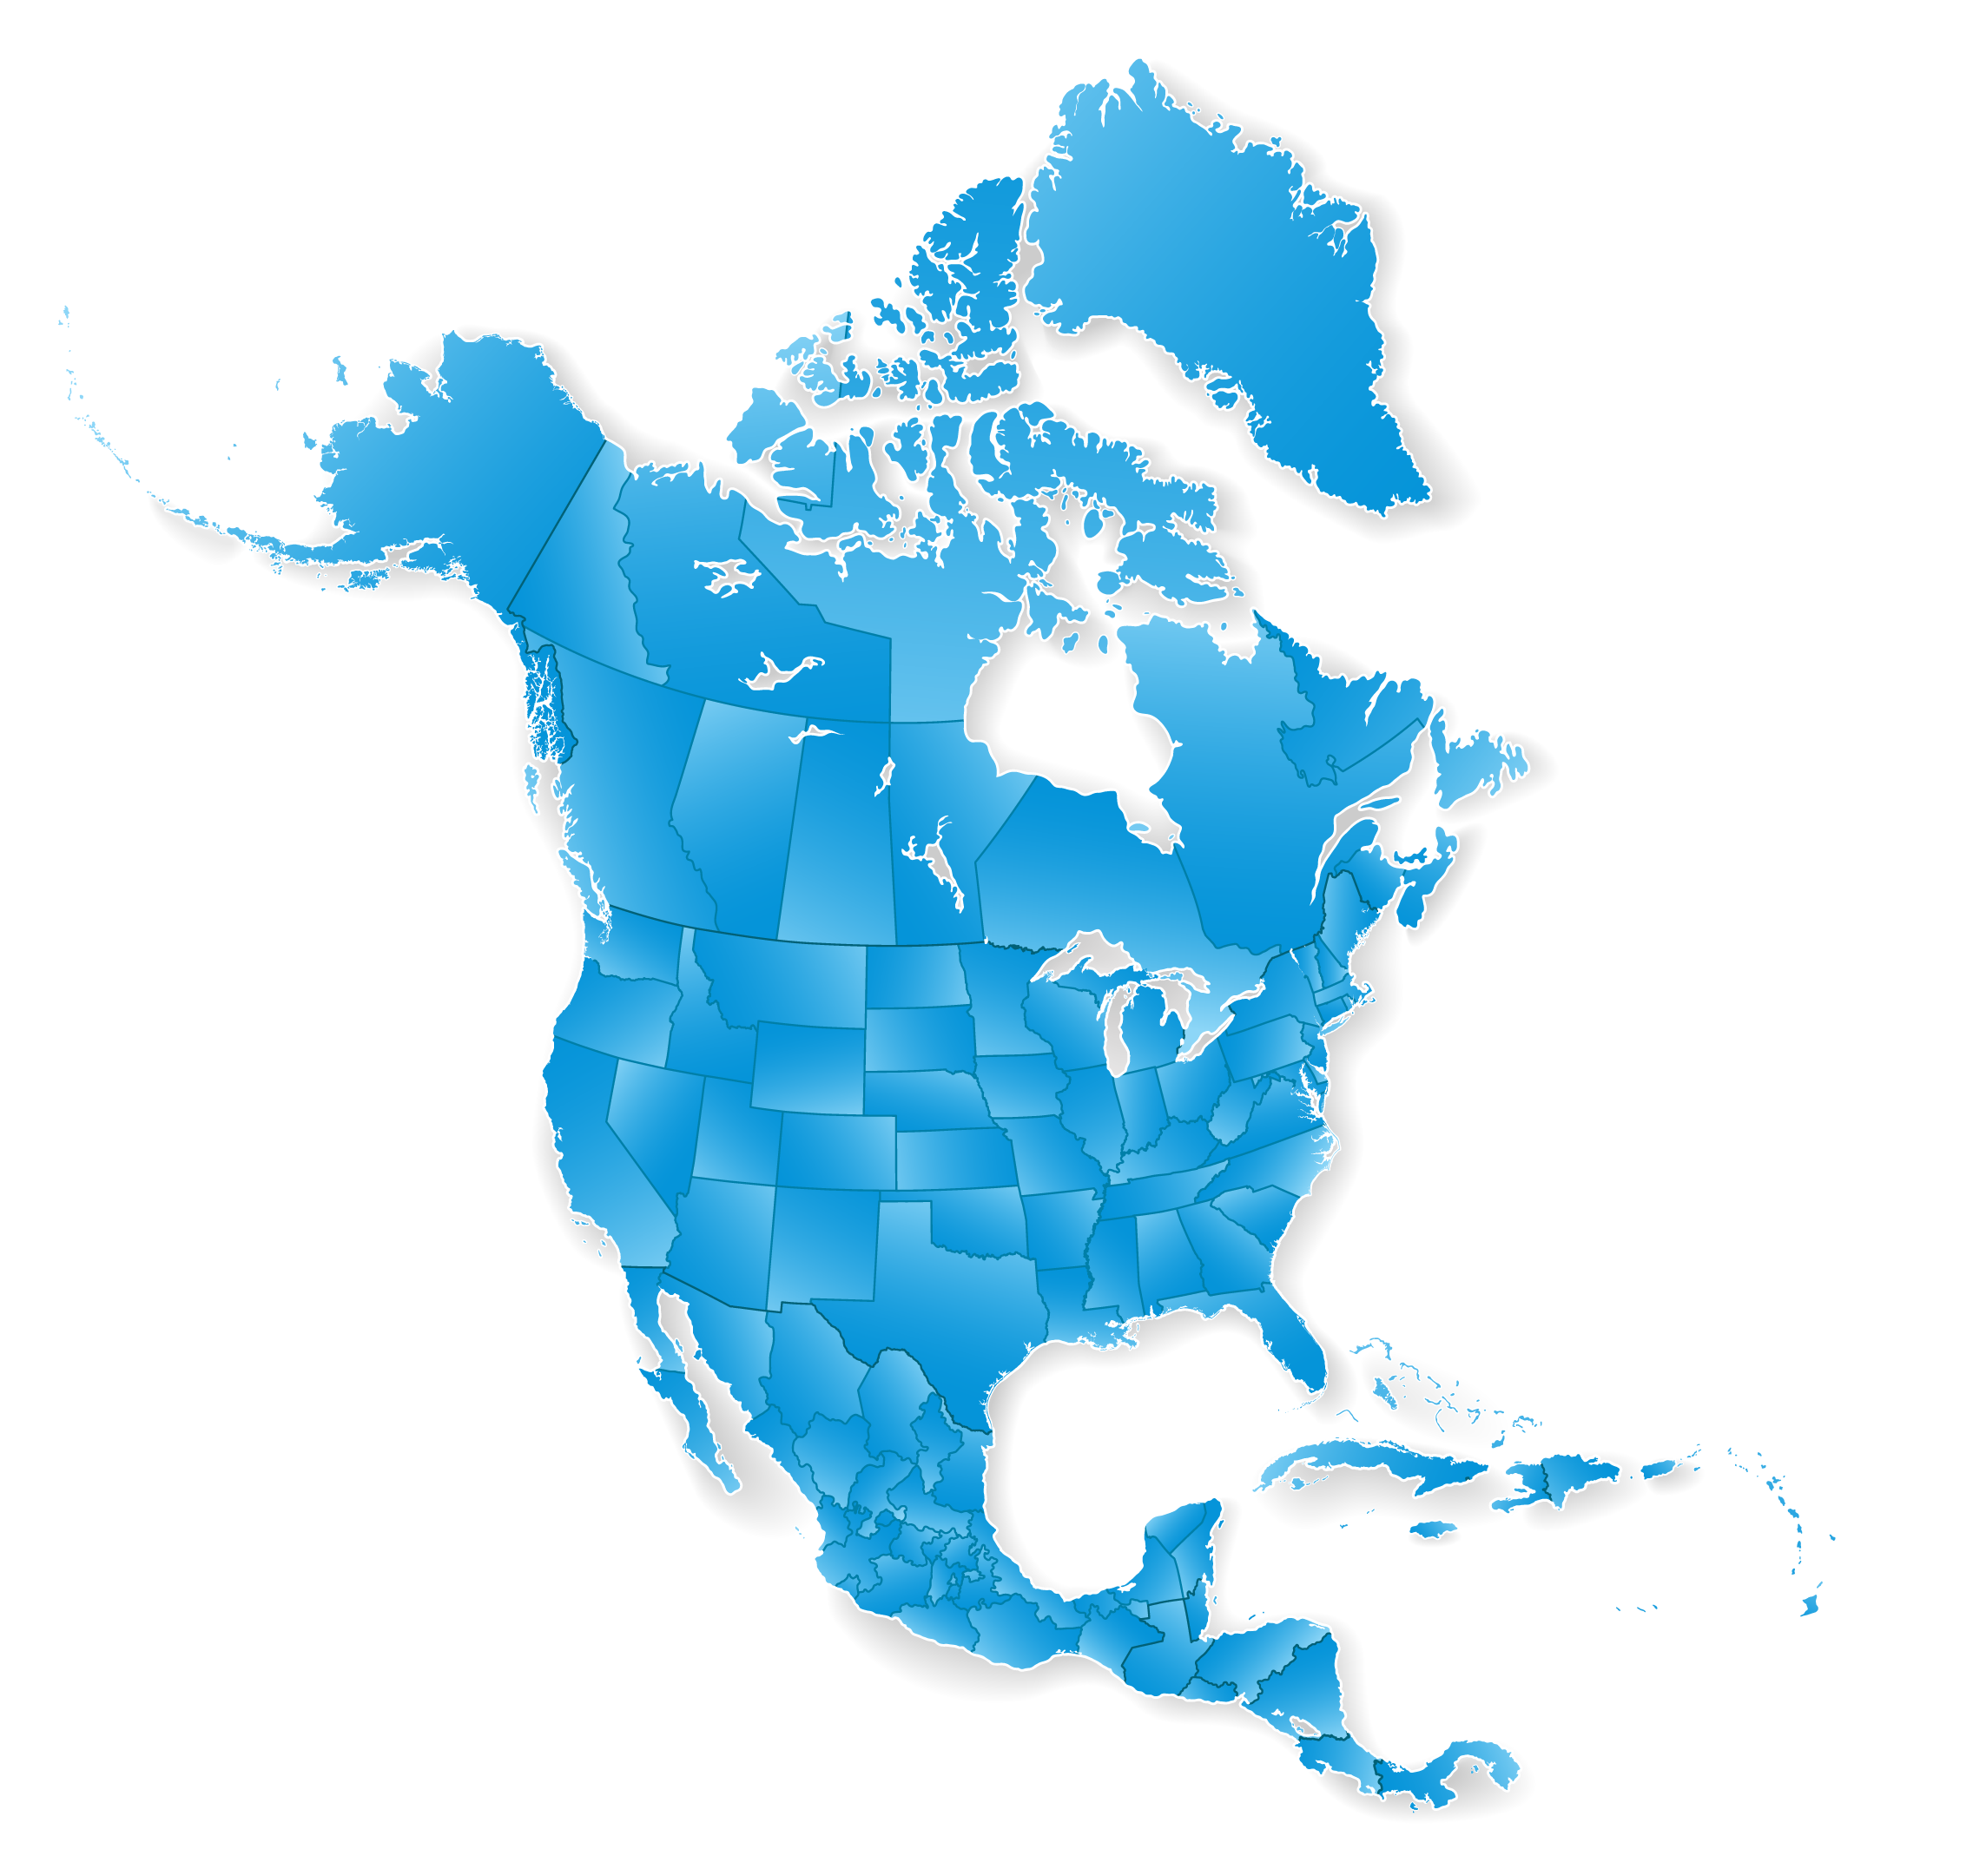 North america continent png. Zoom isolated map final